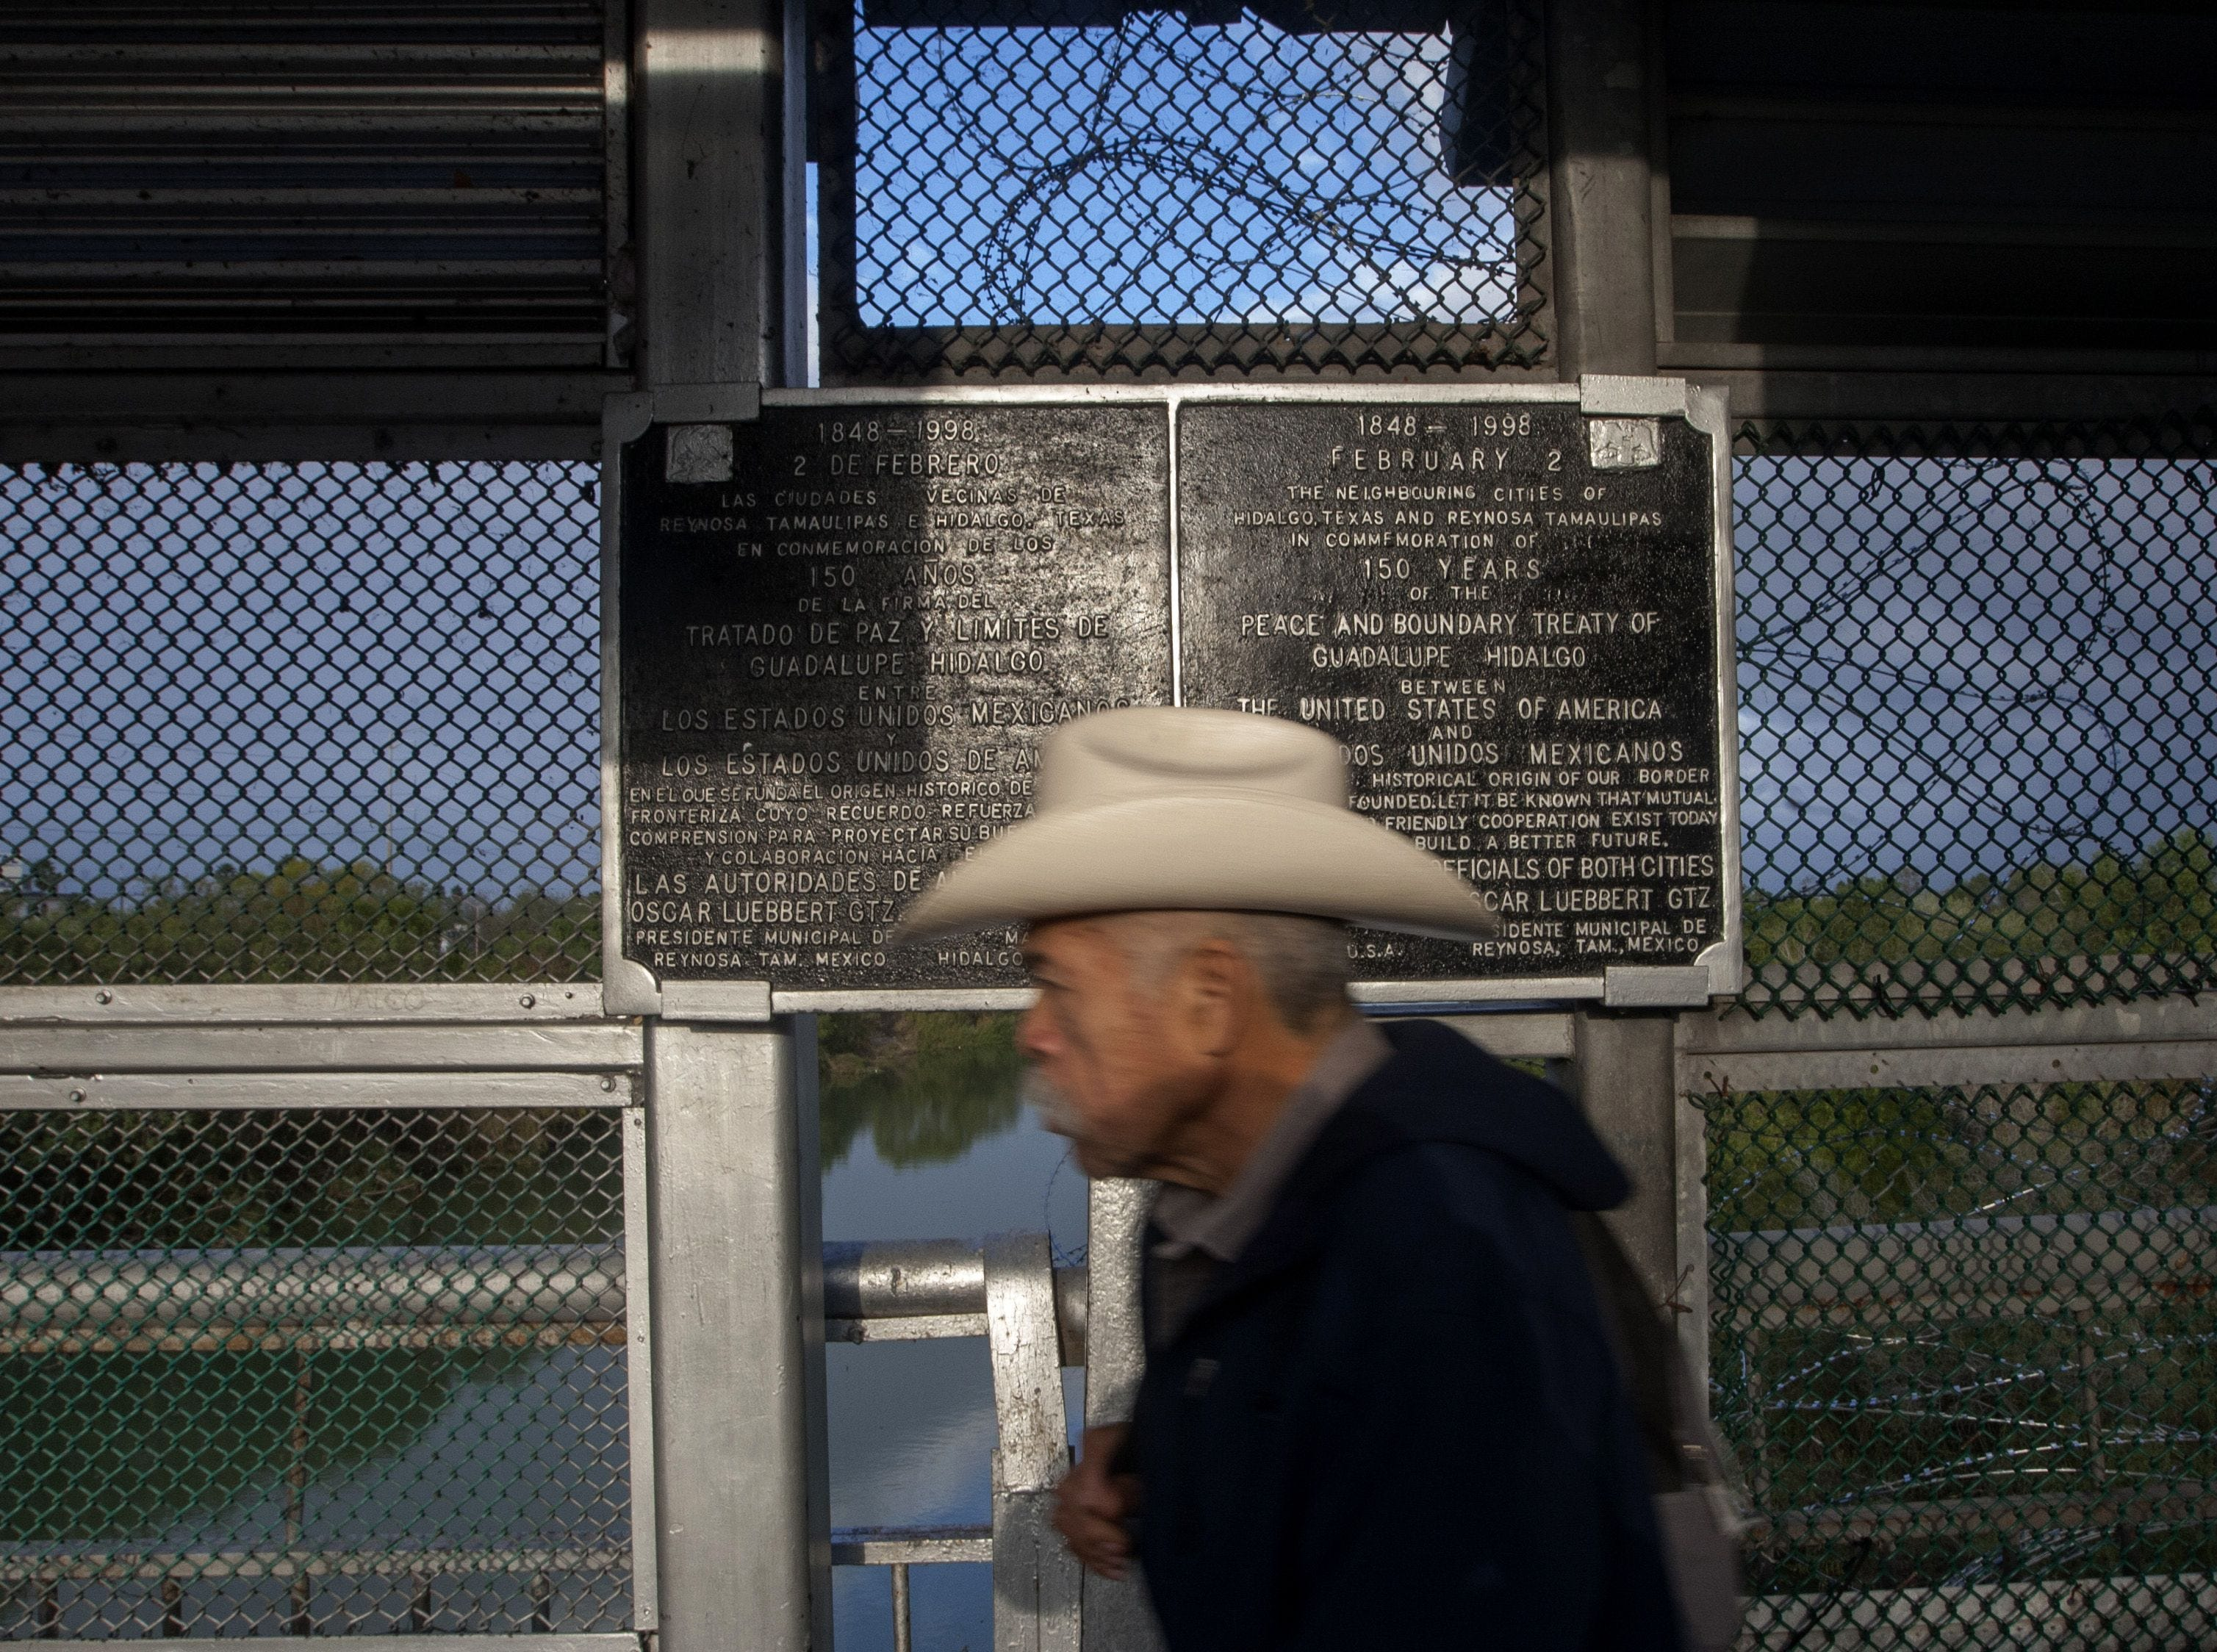 A man crosses the Reynosa-Hidalgo international bridge linking the Mexican city of Reynosa, in the state of Tamaulipas with US city of Hidalgo, in Texas, on Jan. 10, 2019.